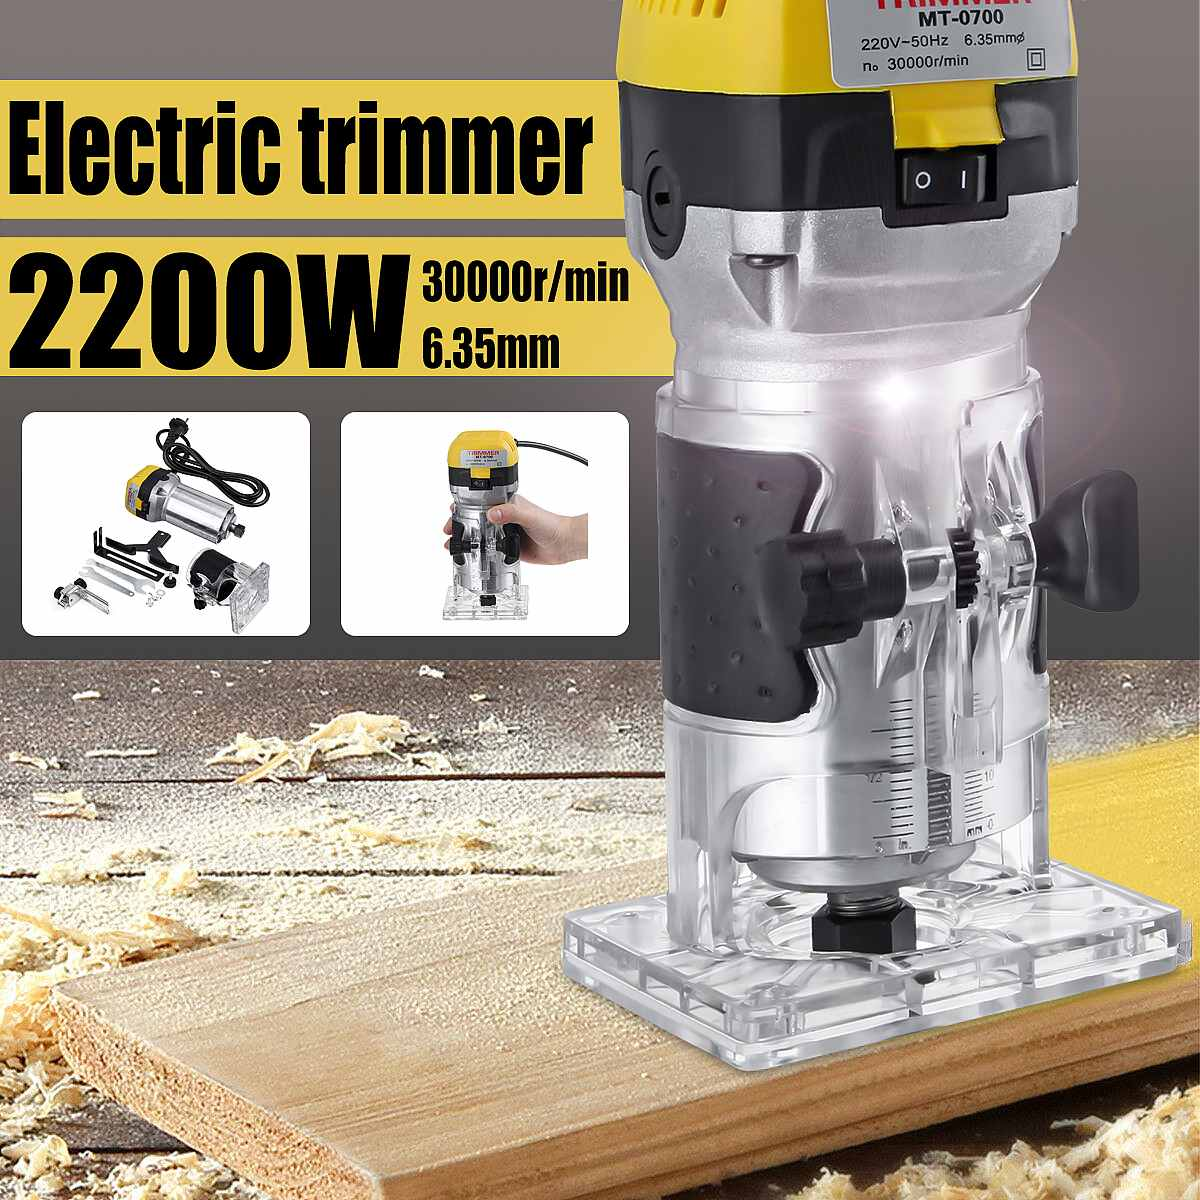 2200W 220V Electric Hand Trimmer Wood Router 6.35mm Woodworking Laminator Carpentry Trimming Cutting Carving Machine Power Tool